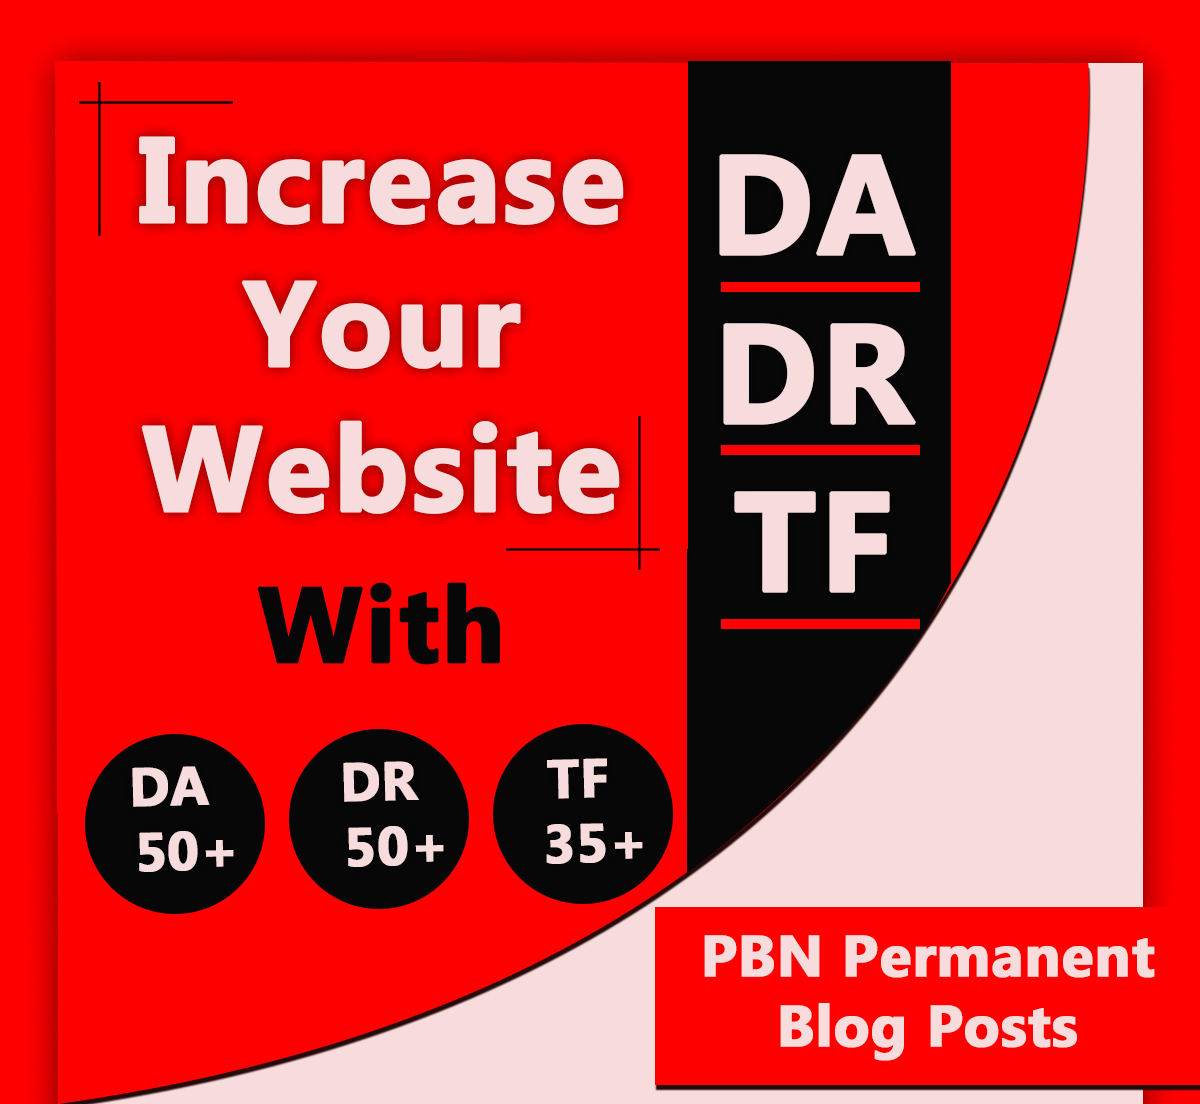 Increase Your Website DA DR TF With 15 DA 50+ DR 50+ TF 35+ PBN Posts